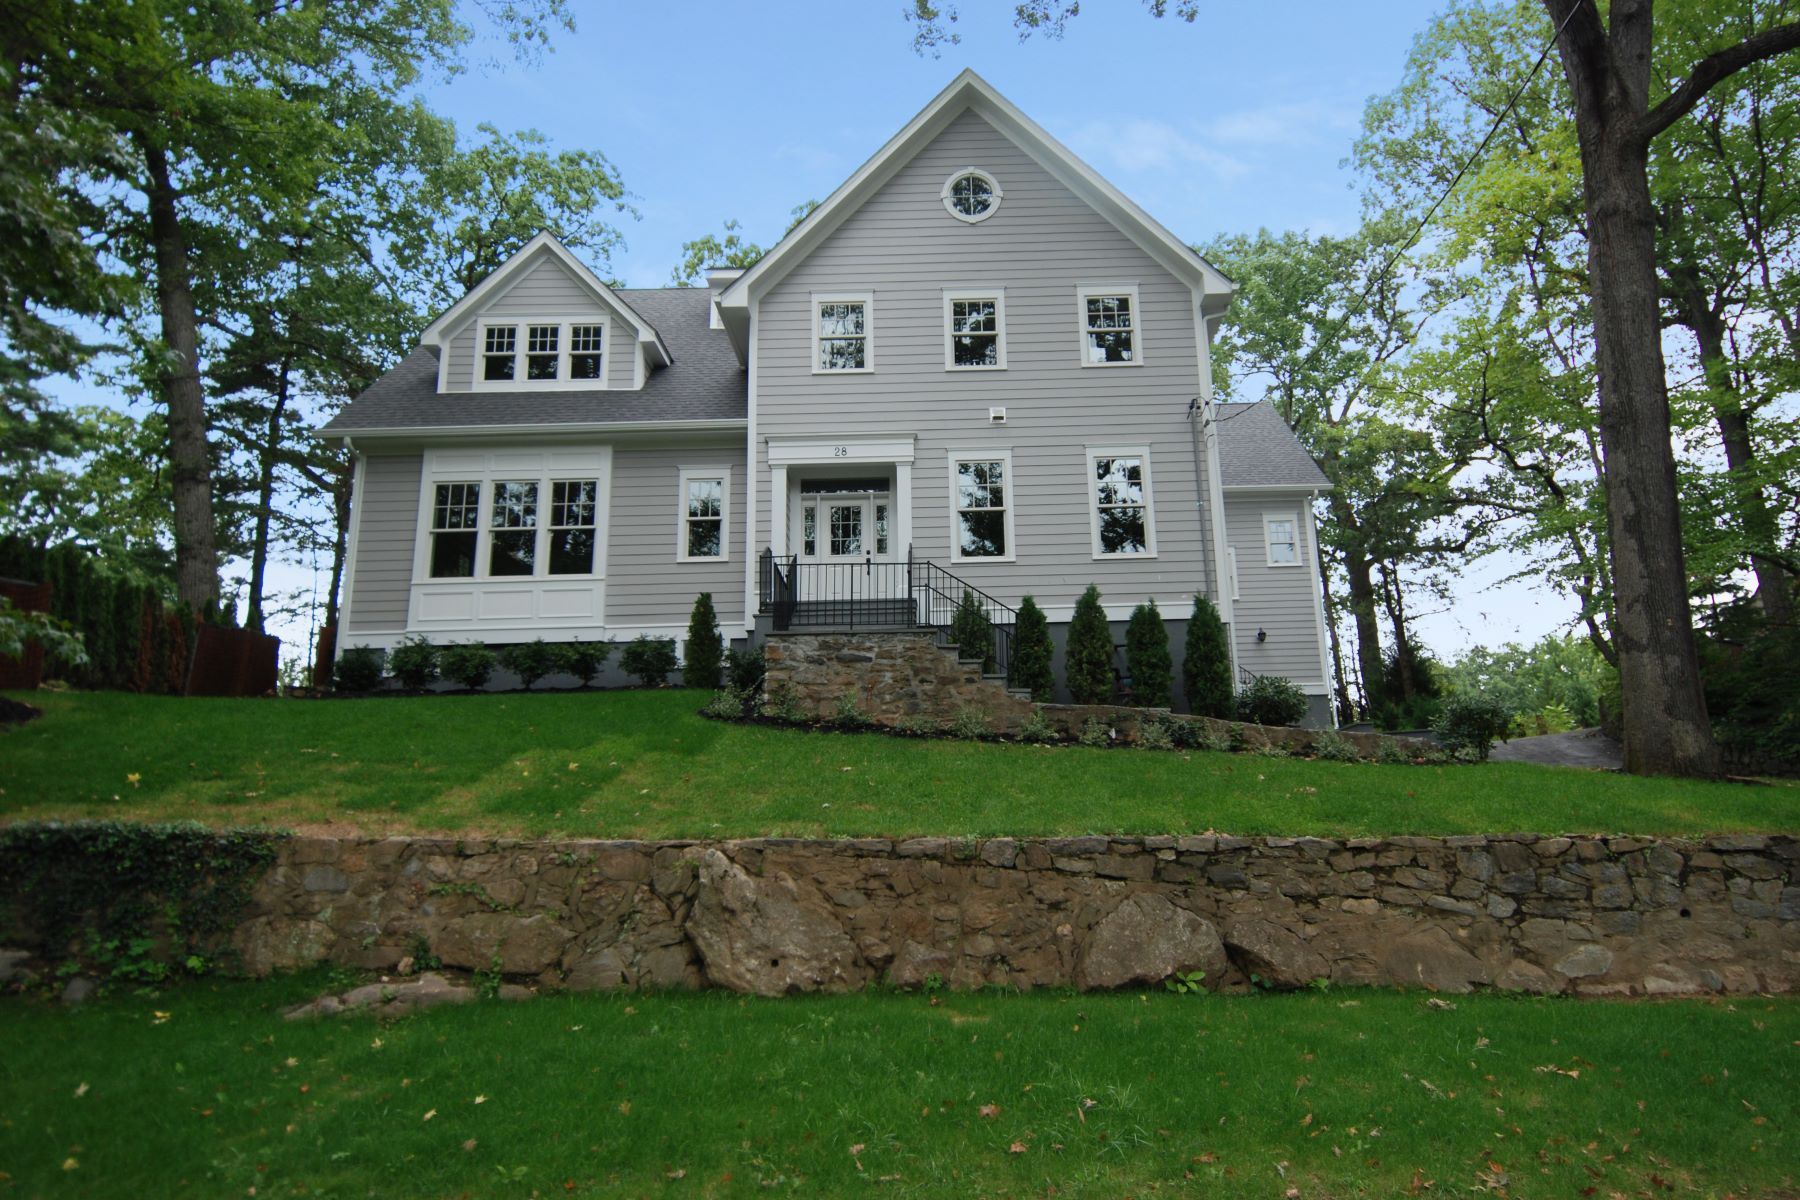 Single Family Homes for Active at 28 Rockwood Drive Larchmont, New York 10538 United States